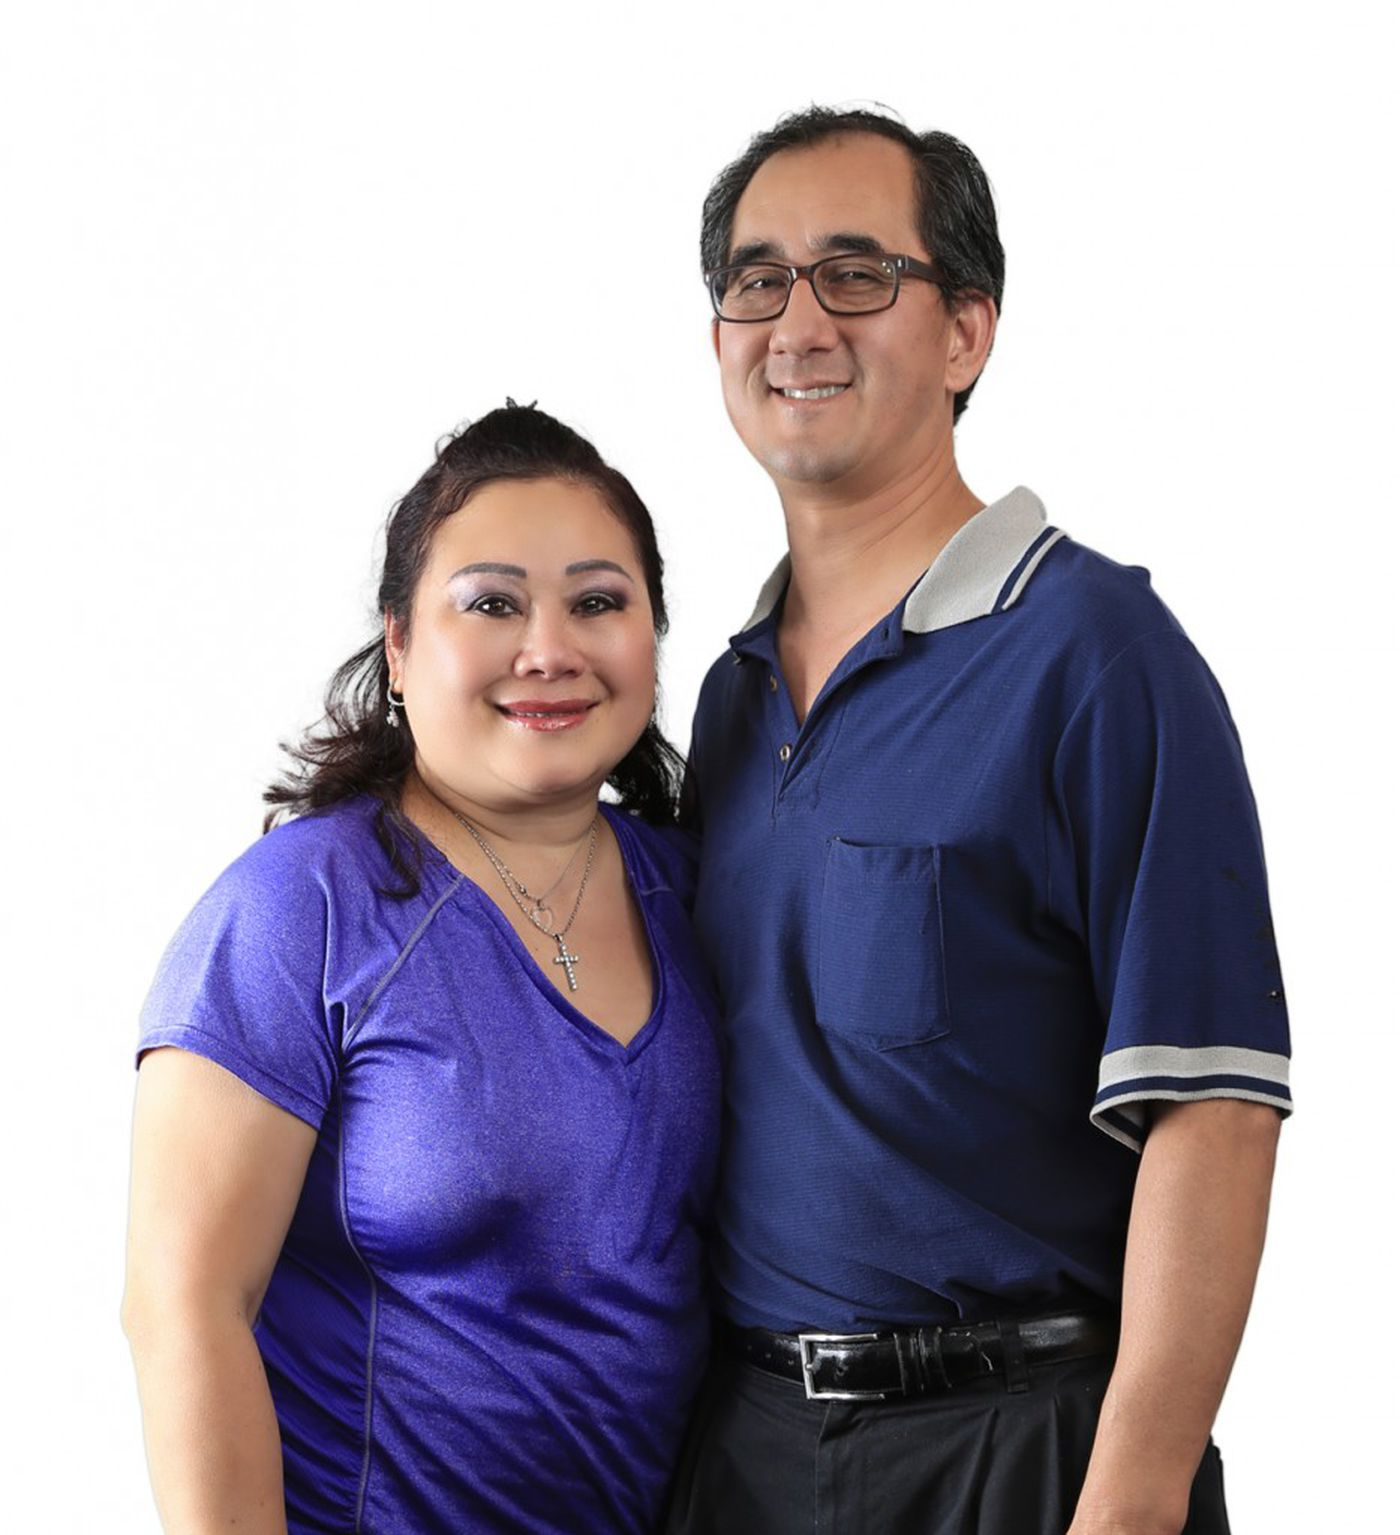 Joanne and Curtis Yim, owners of Ray's Place in Anchorage, Alaska. (Joshua Genuino / Alaska Dispatch News)